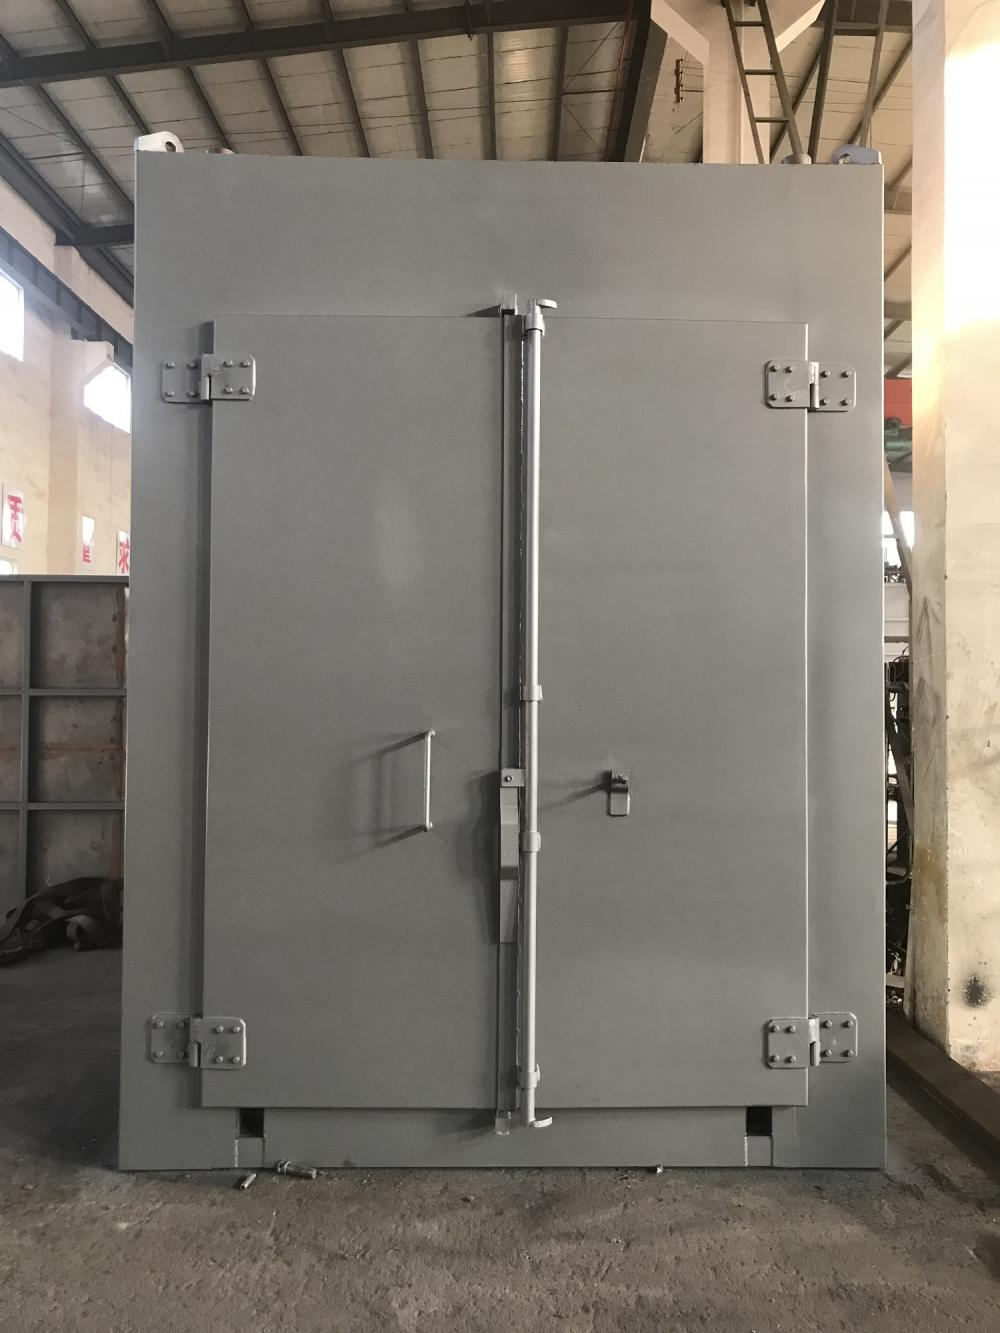 Quenching Aging Furnace